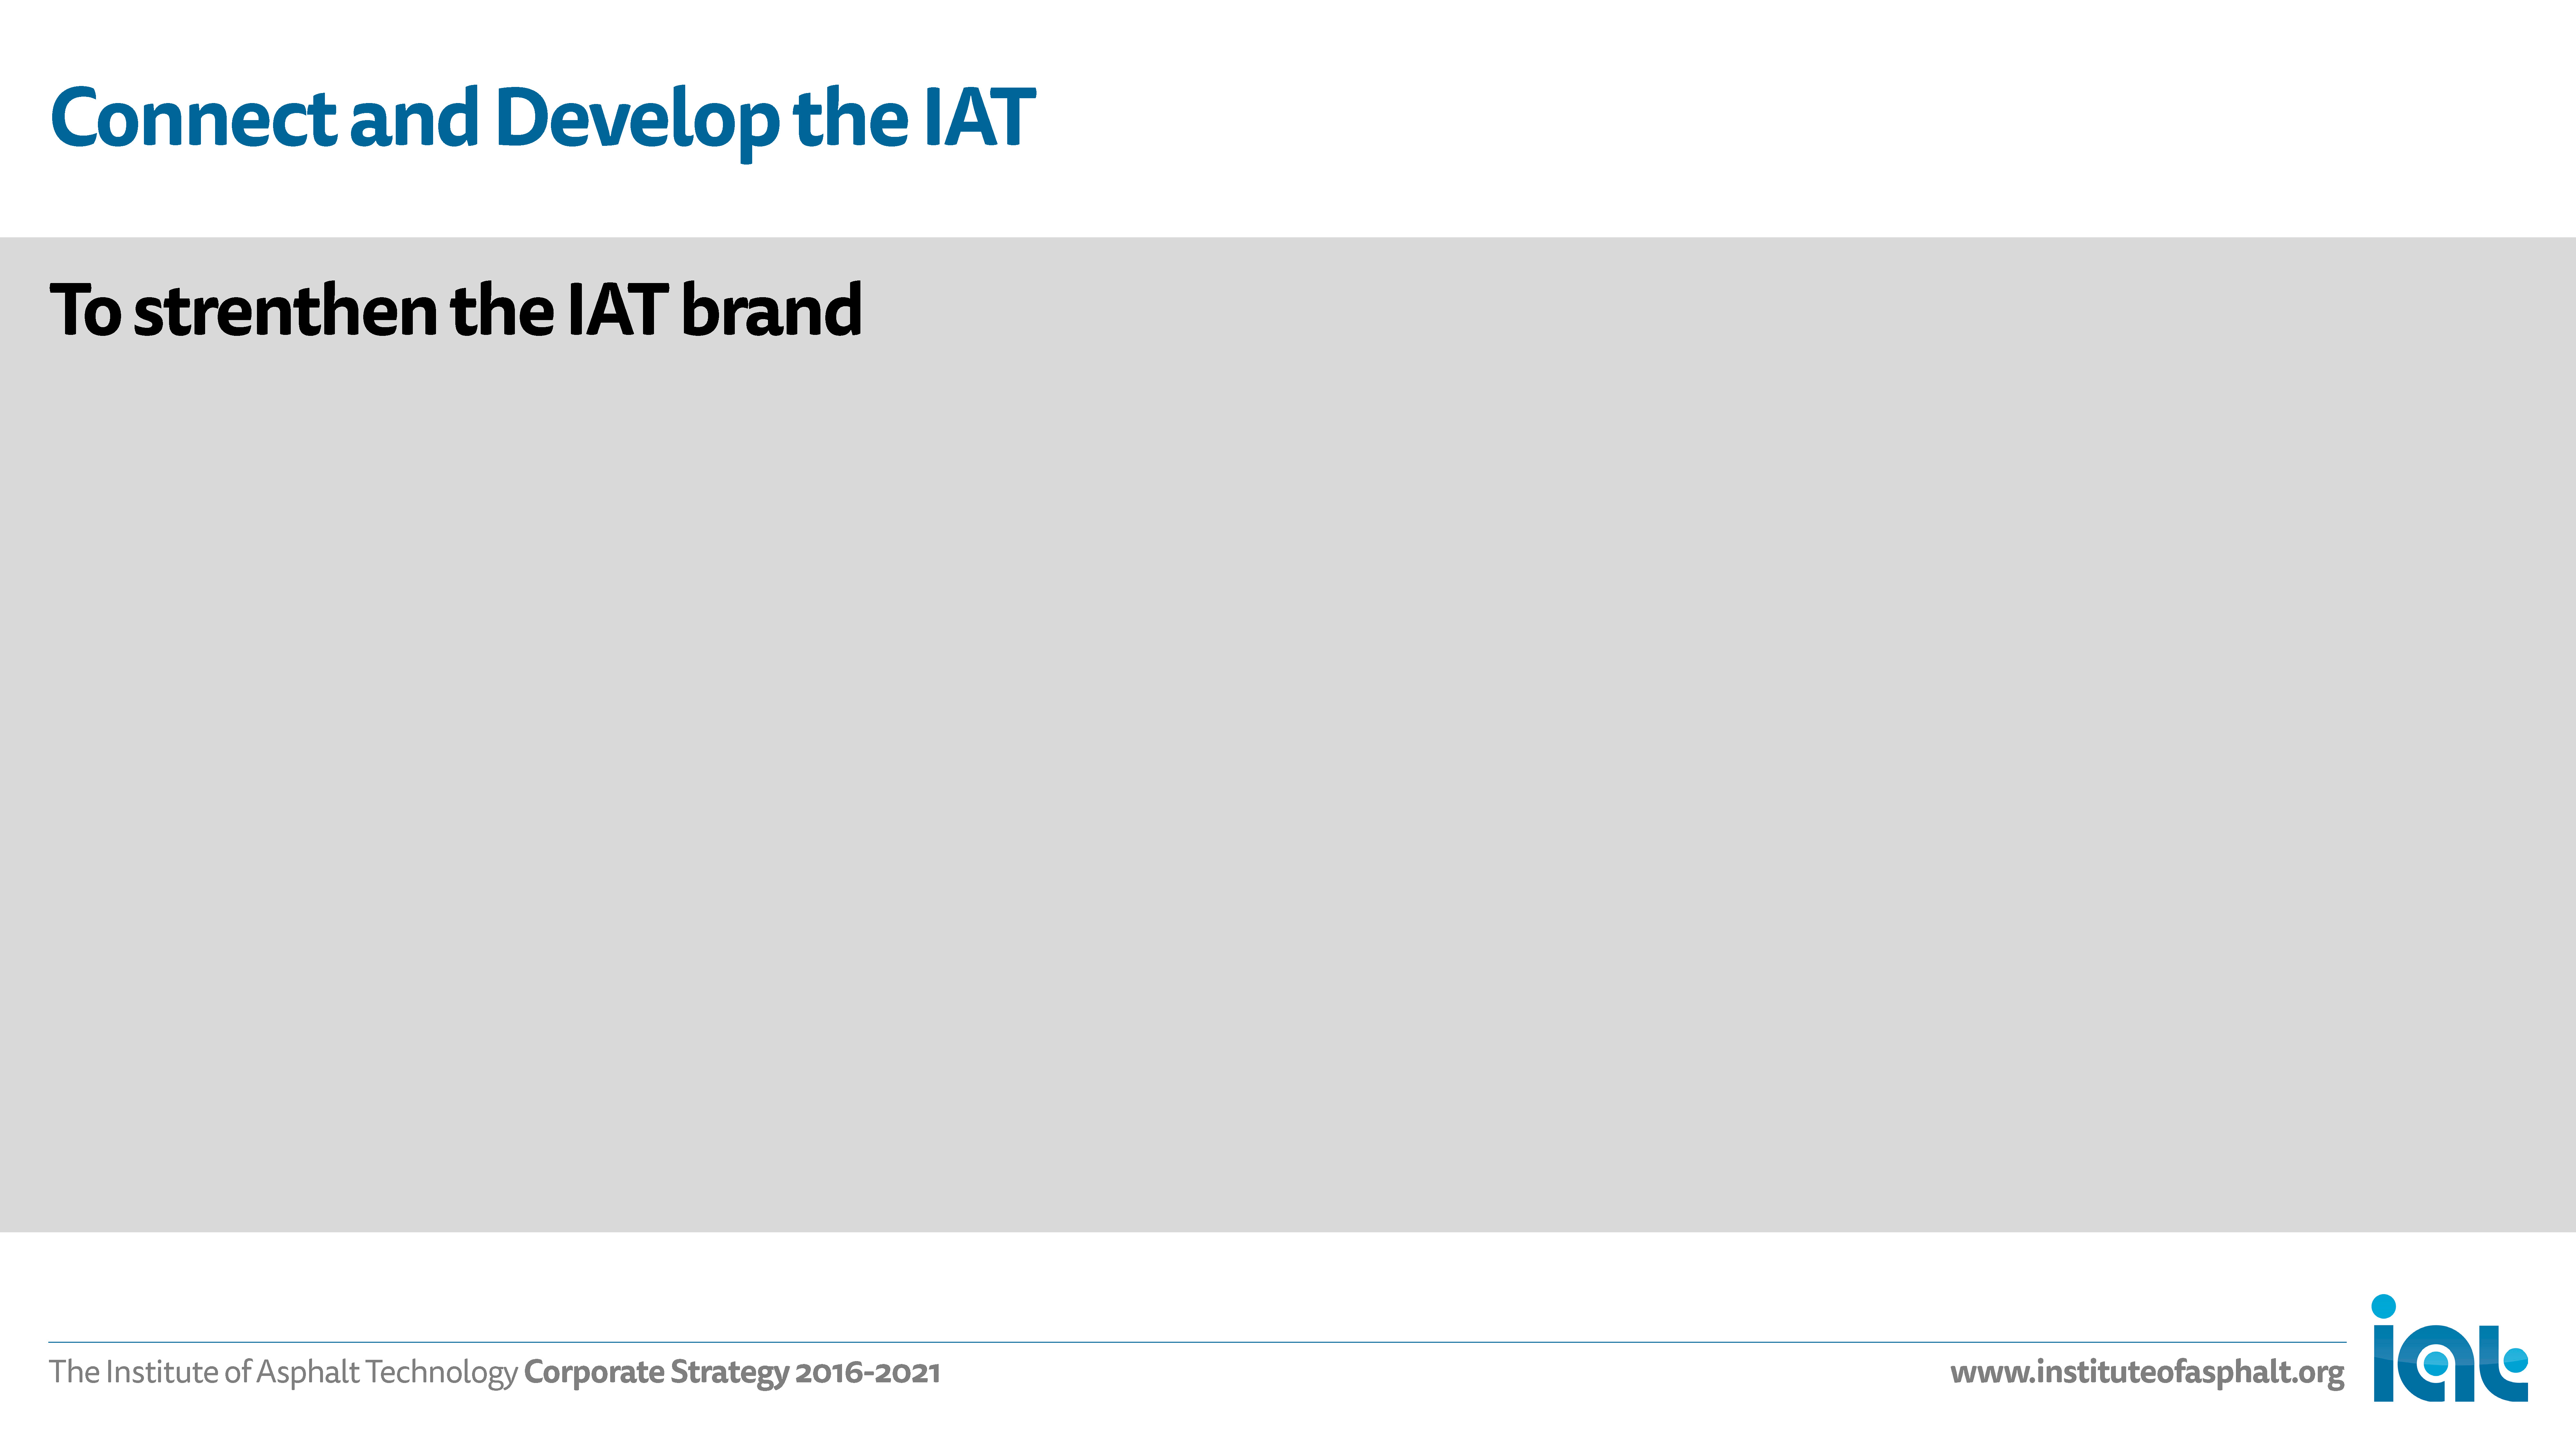 IAT Strategy, slide no. 13